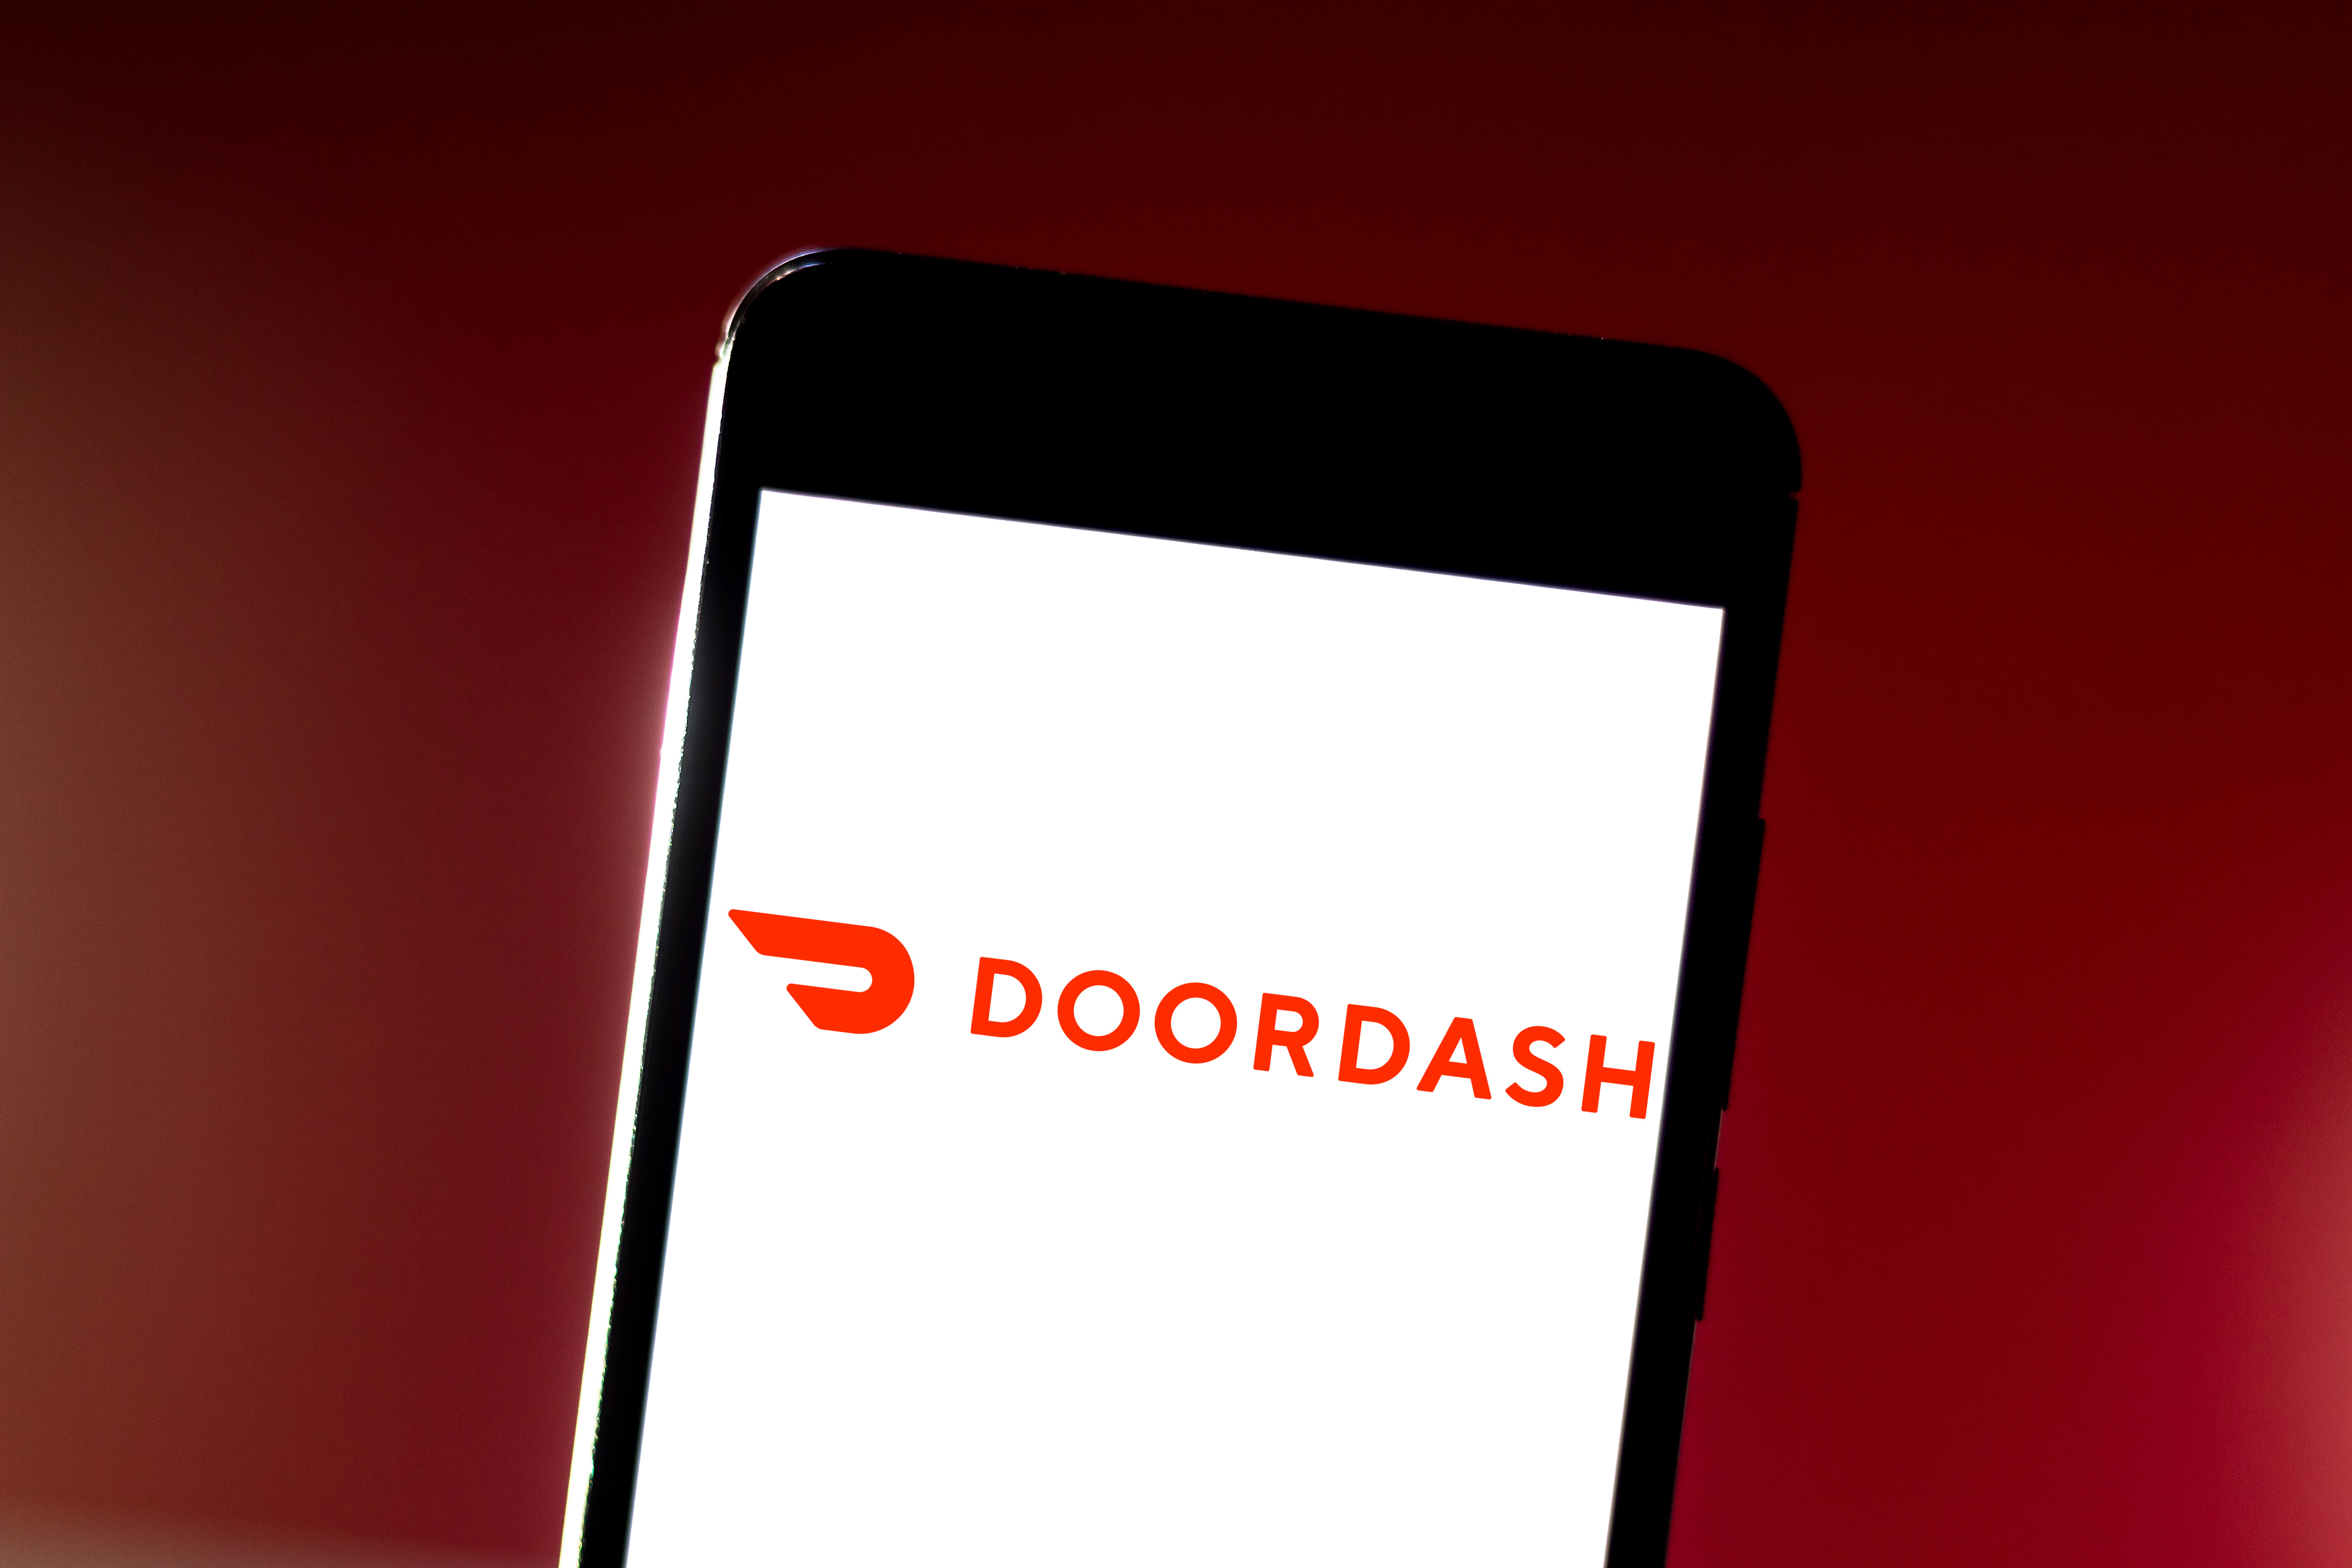 doordash how long does it take to veryify bank